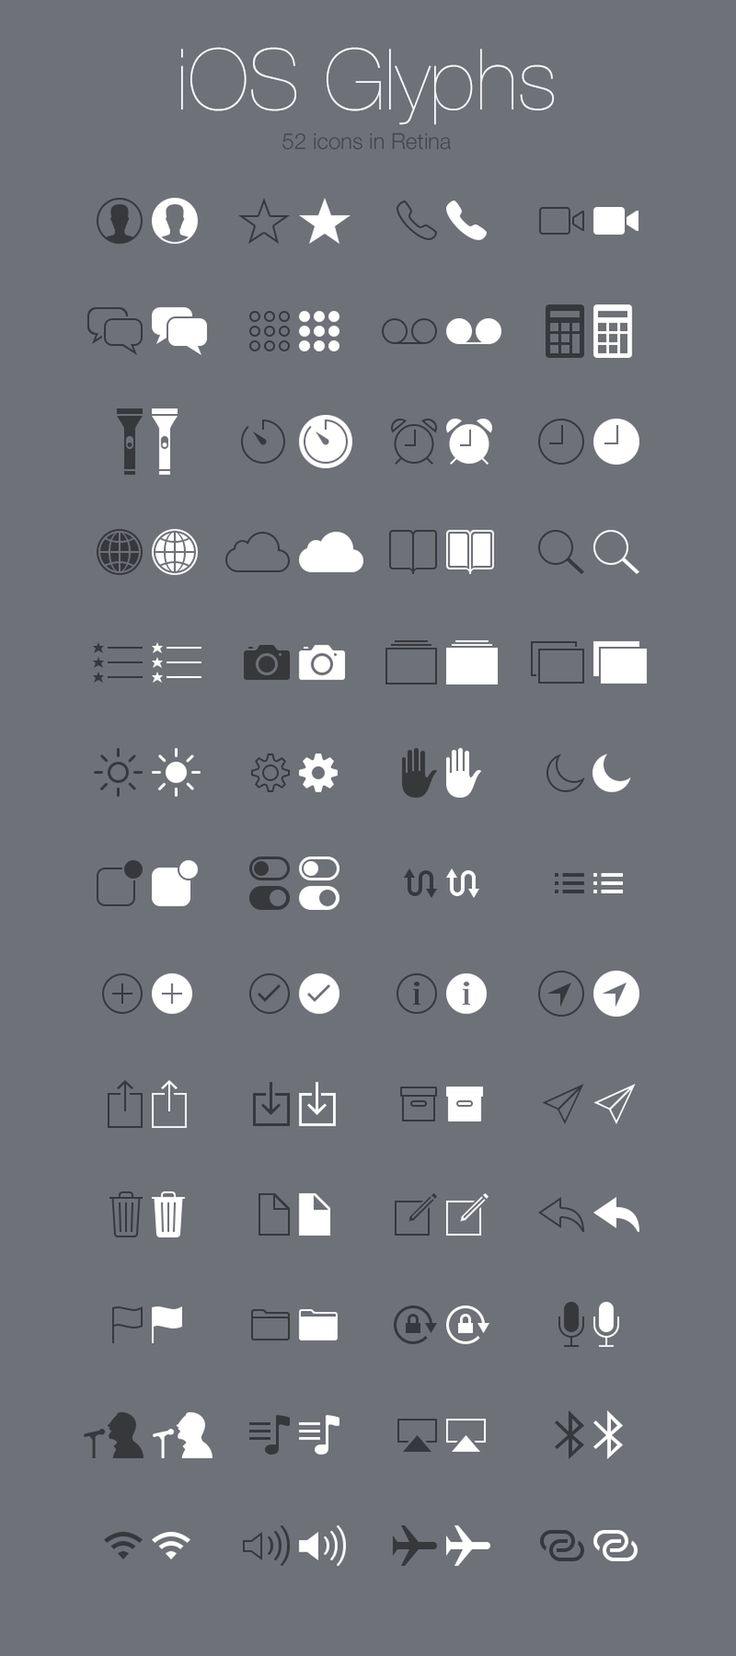 Web design freebies, Free iOS Glyphs